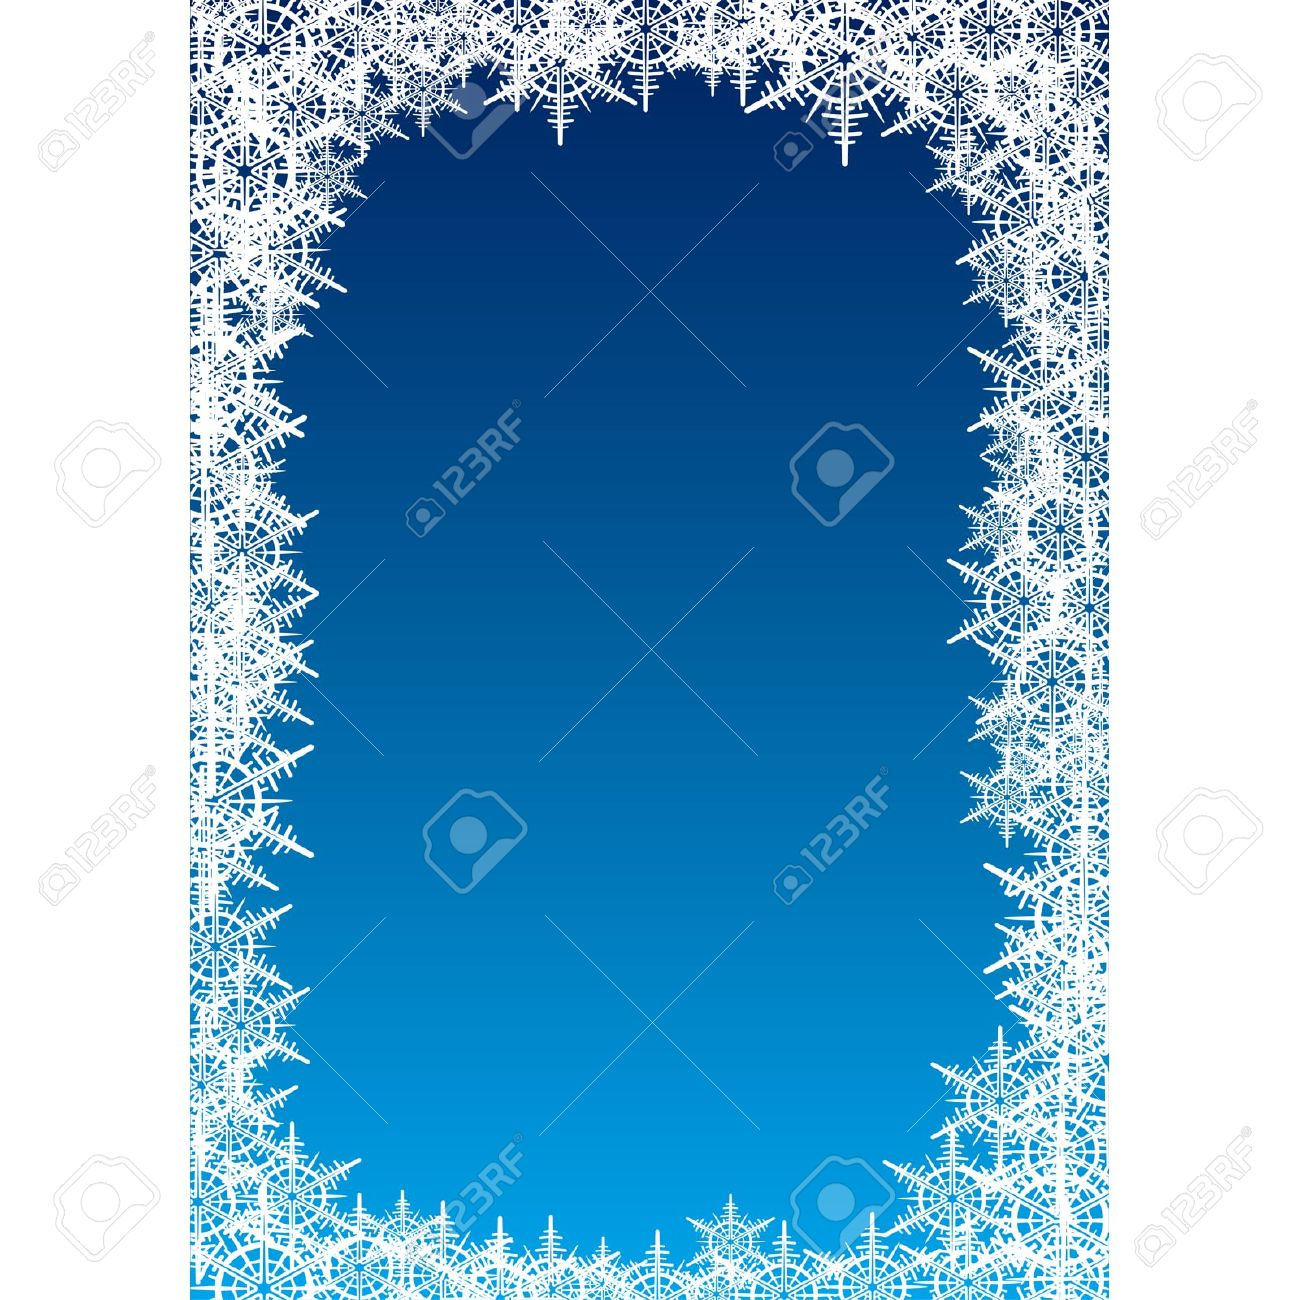 Illustration Frame Consist Of Snowflakes For Greetings Posters